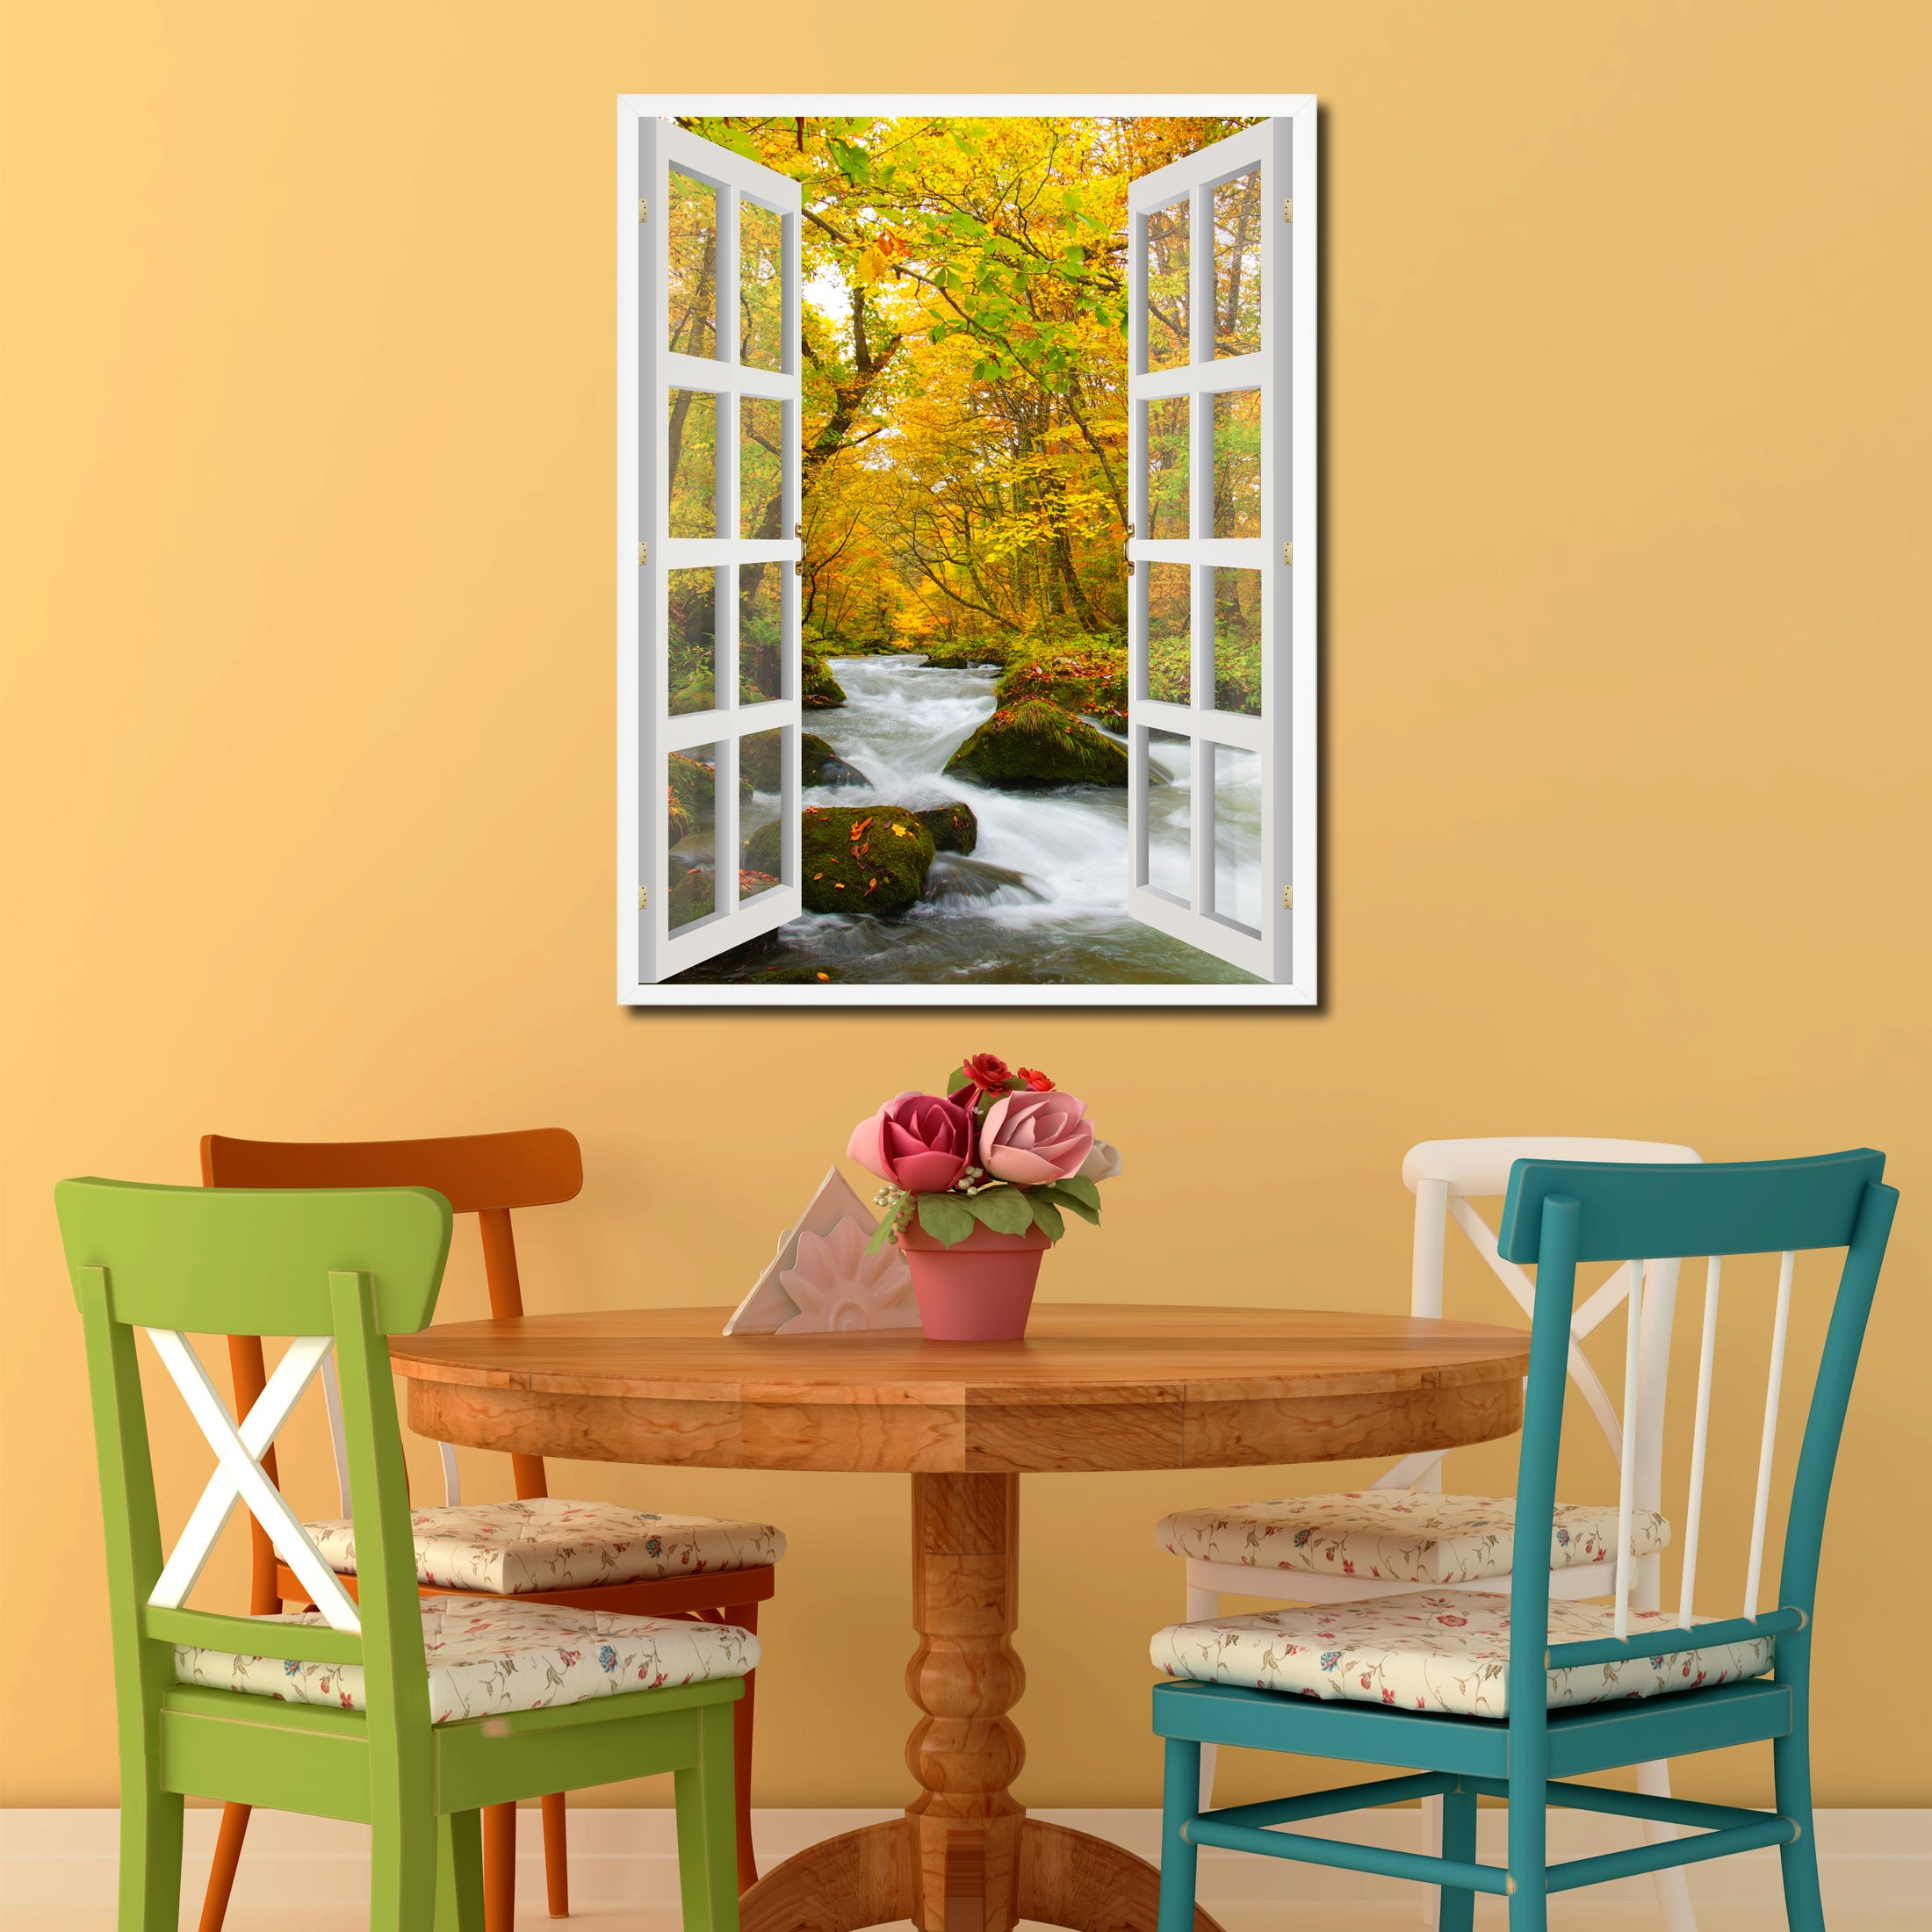 Autumn River Picture Window Wall Art Home Decor Gift Ideas Kitchen ...